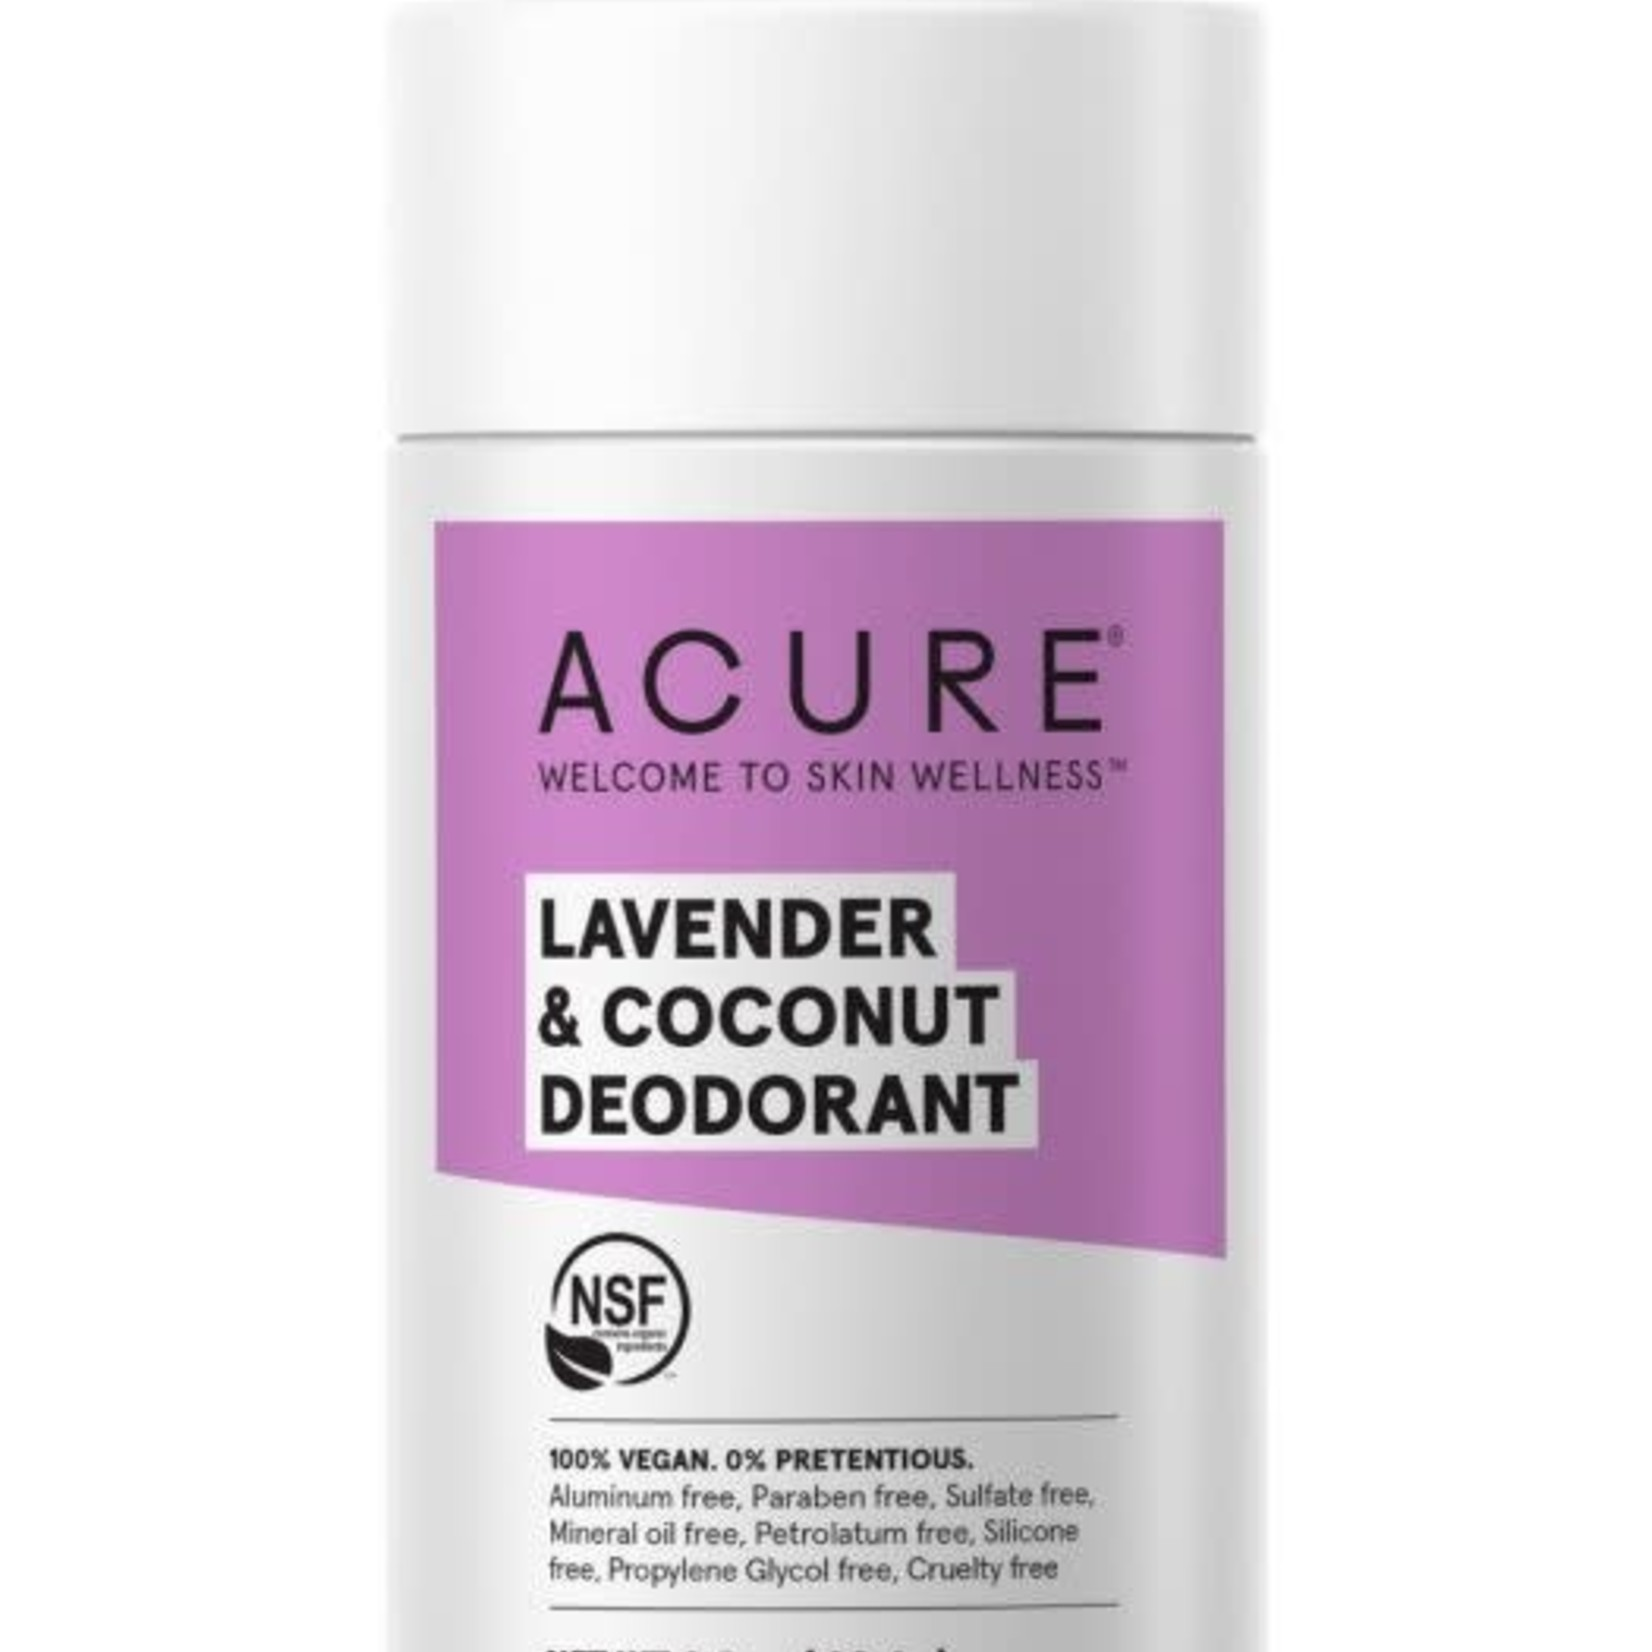 Acure Acure Lavender & Coconut Deodorant